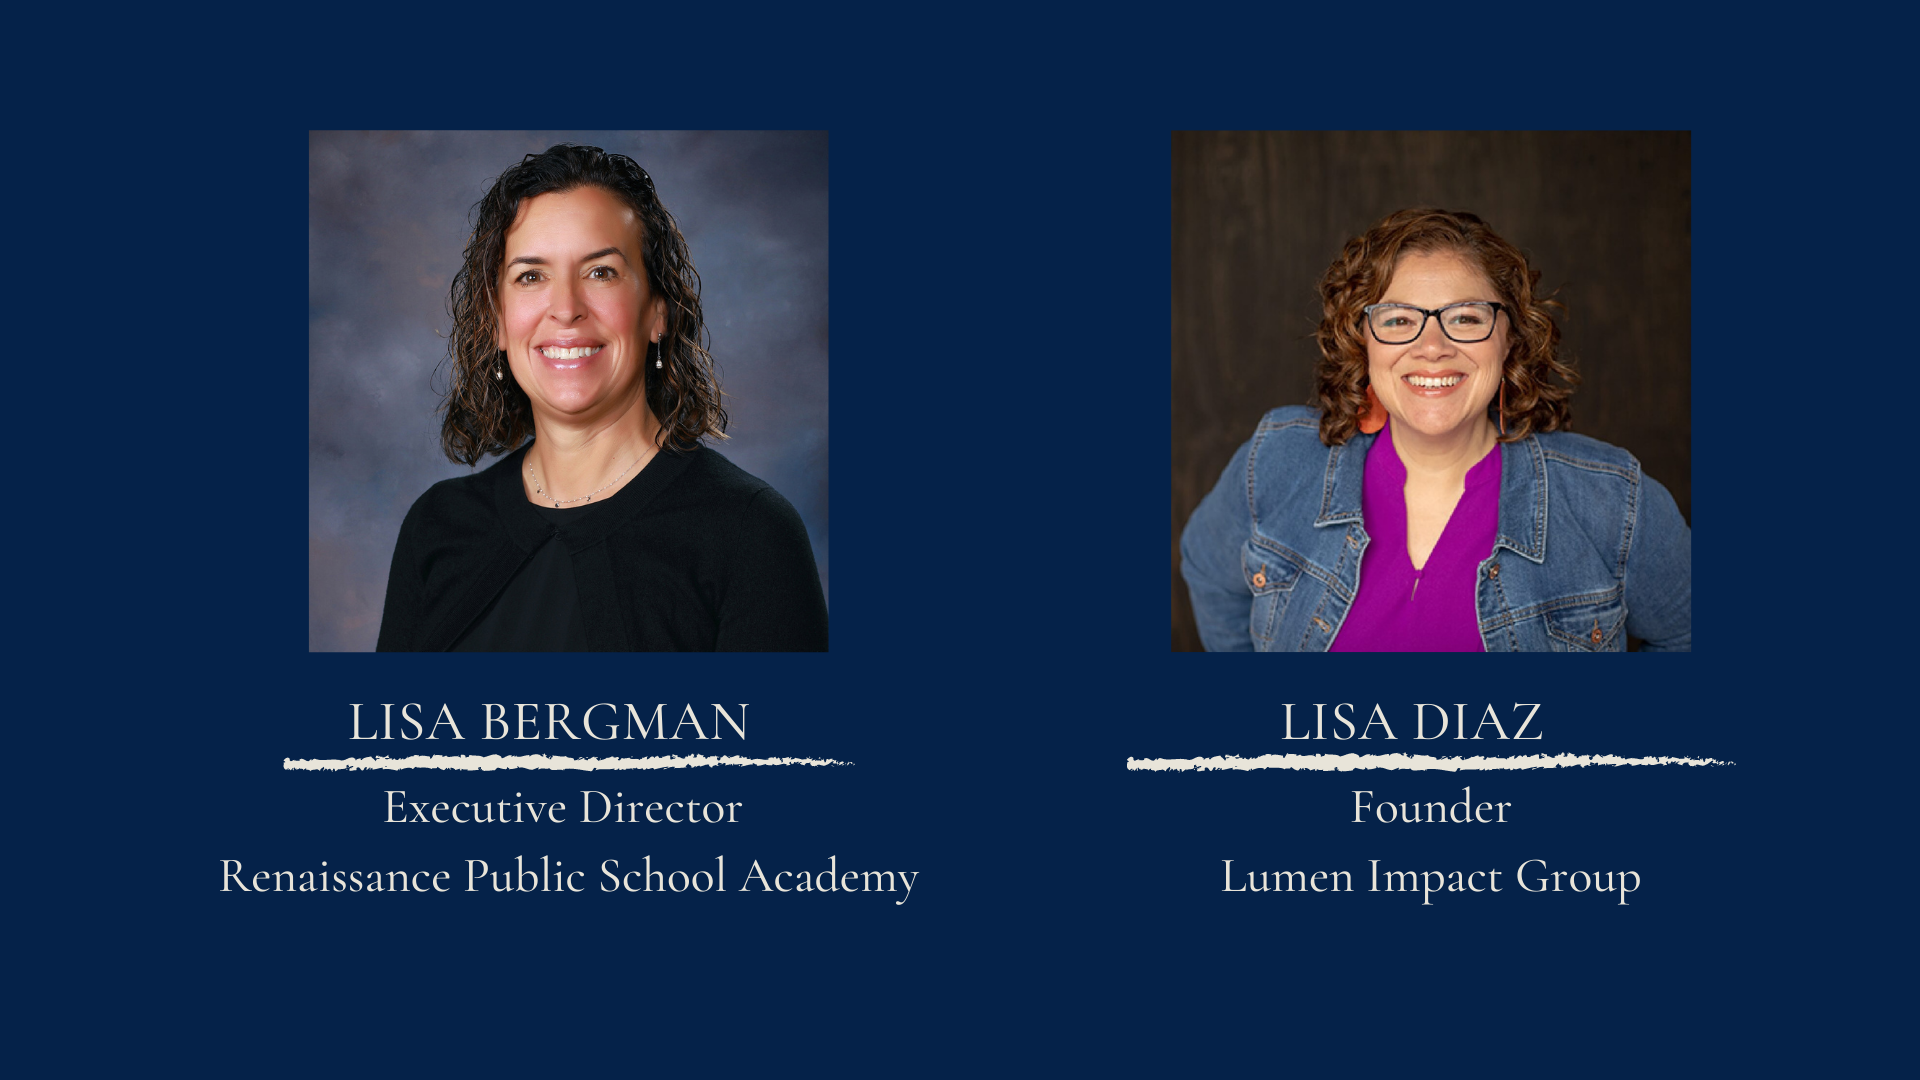 Wonder Workshops: Bringing Identity And Inquiry Into Schooling: What Now? Ep. 9 With Lisa Bergman And Lisa Diaz